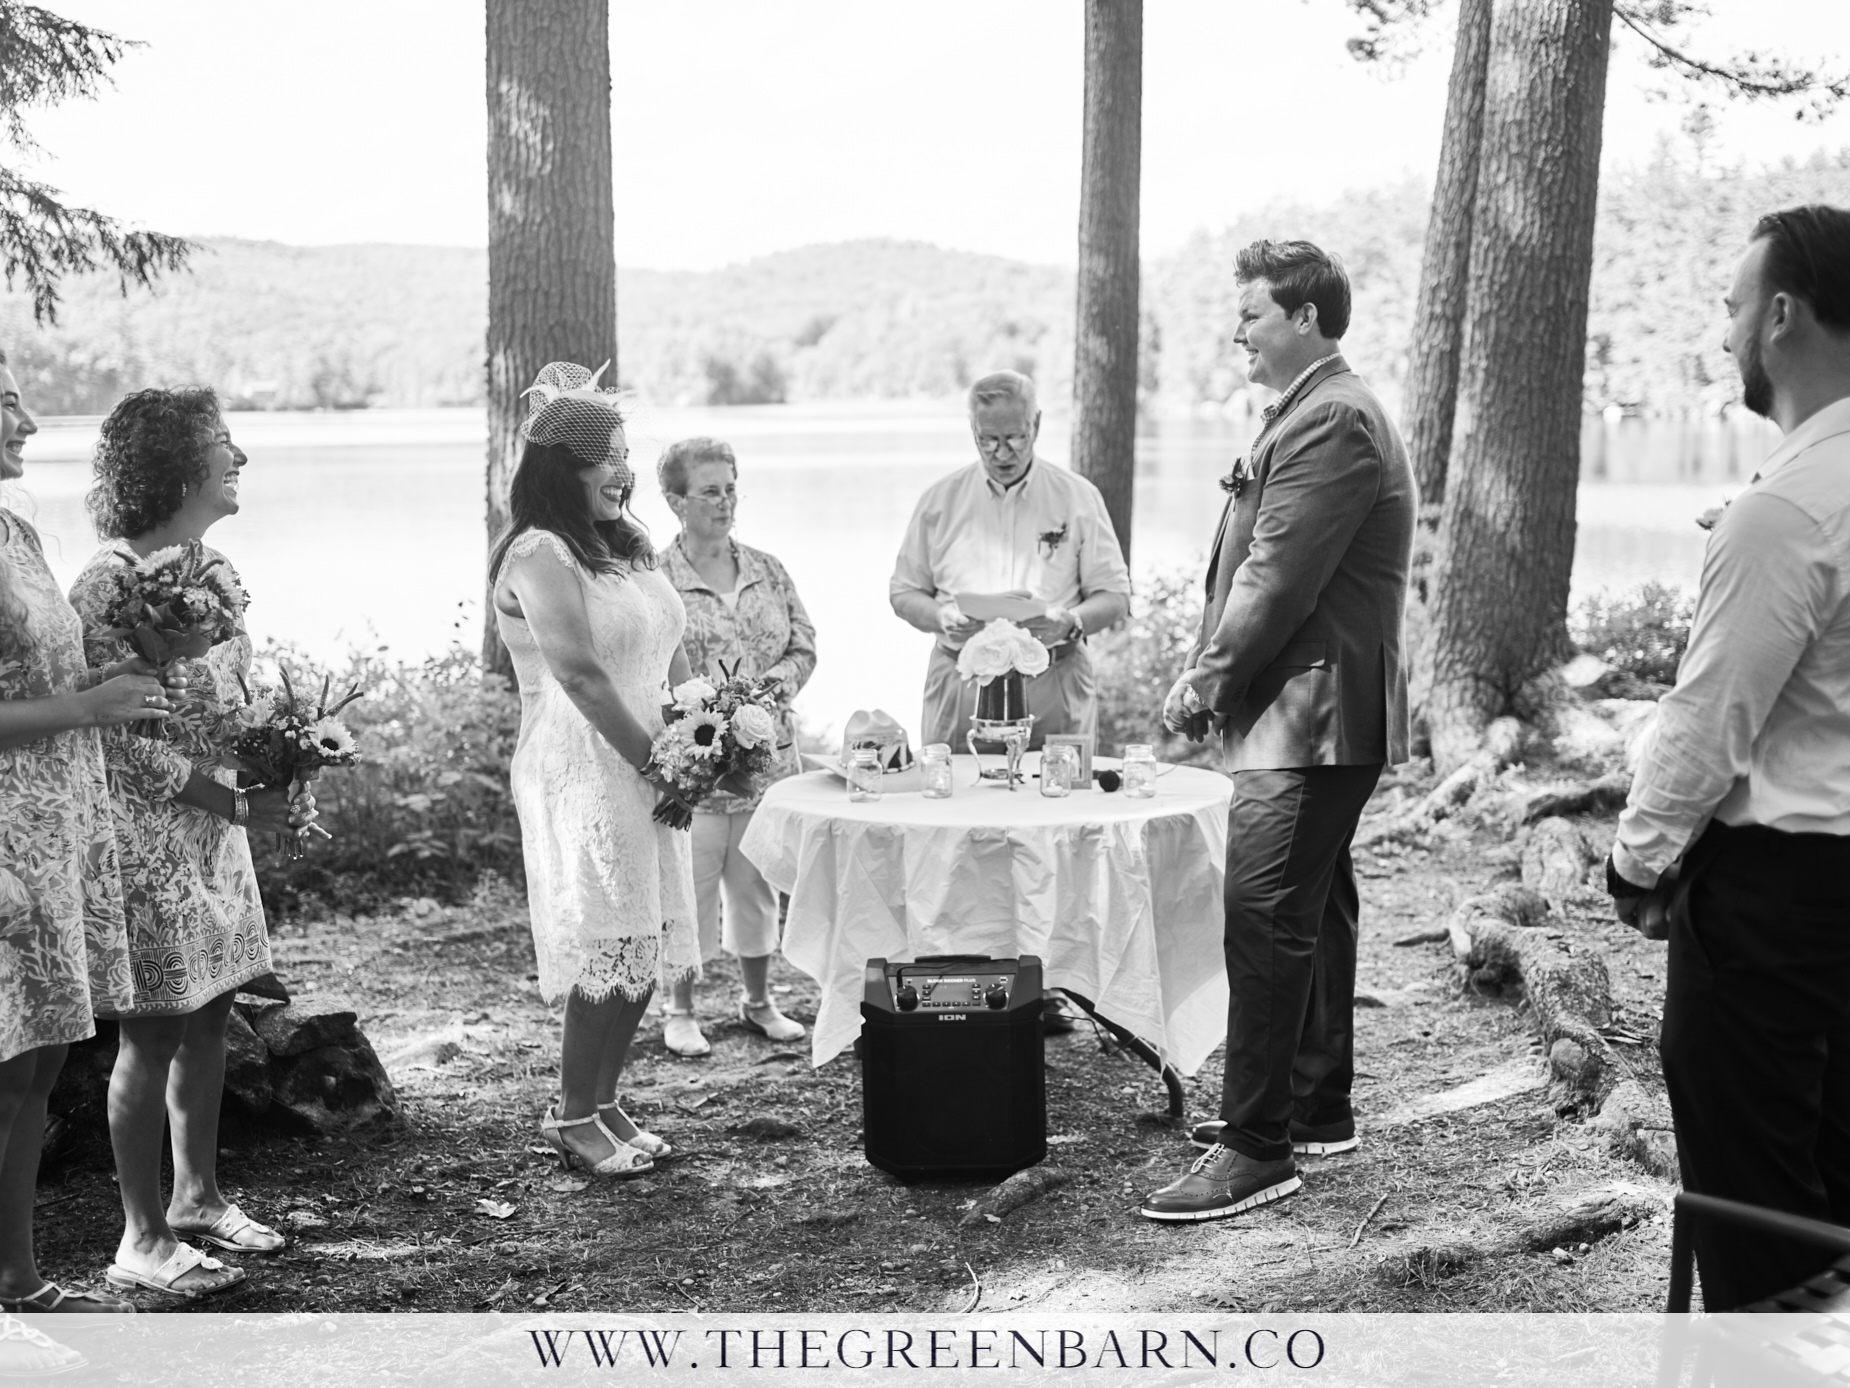 Bride and Groom Getting Married in an Intimate Private Wedding Ceremony in the Woods | NH Wedding Photographer